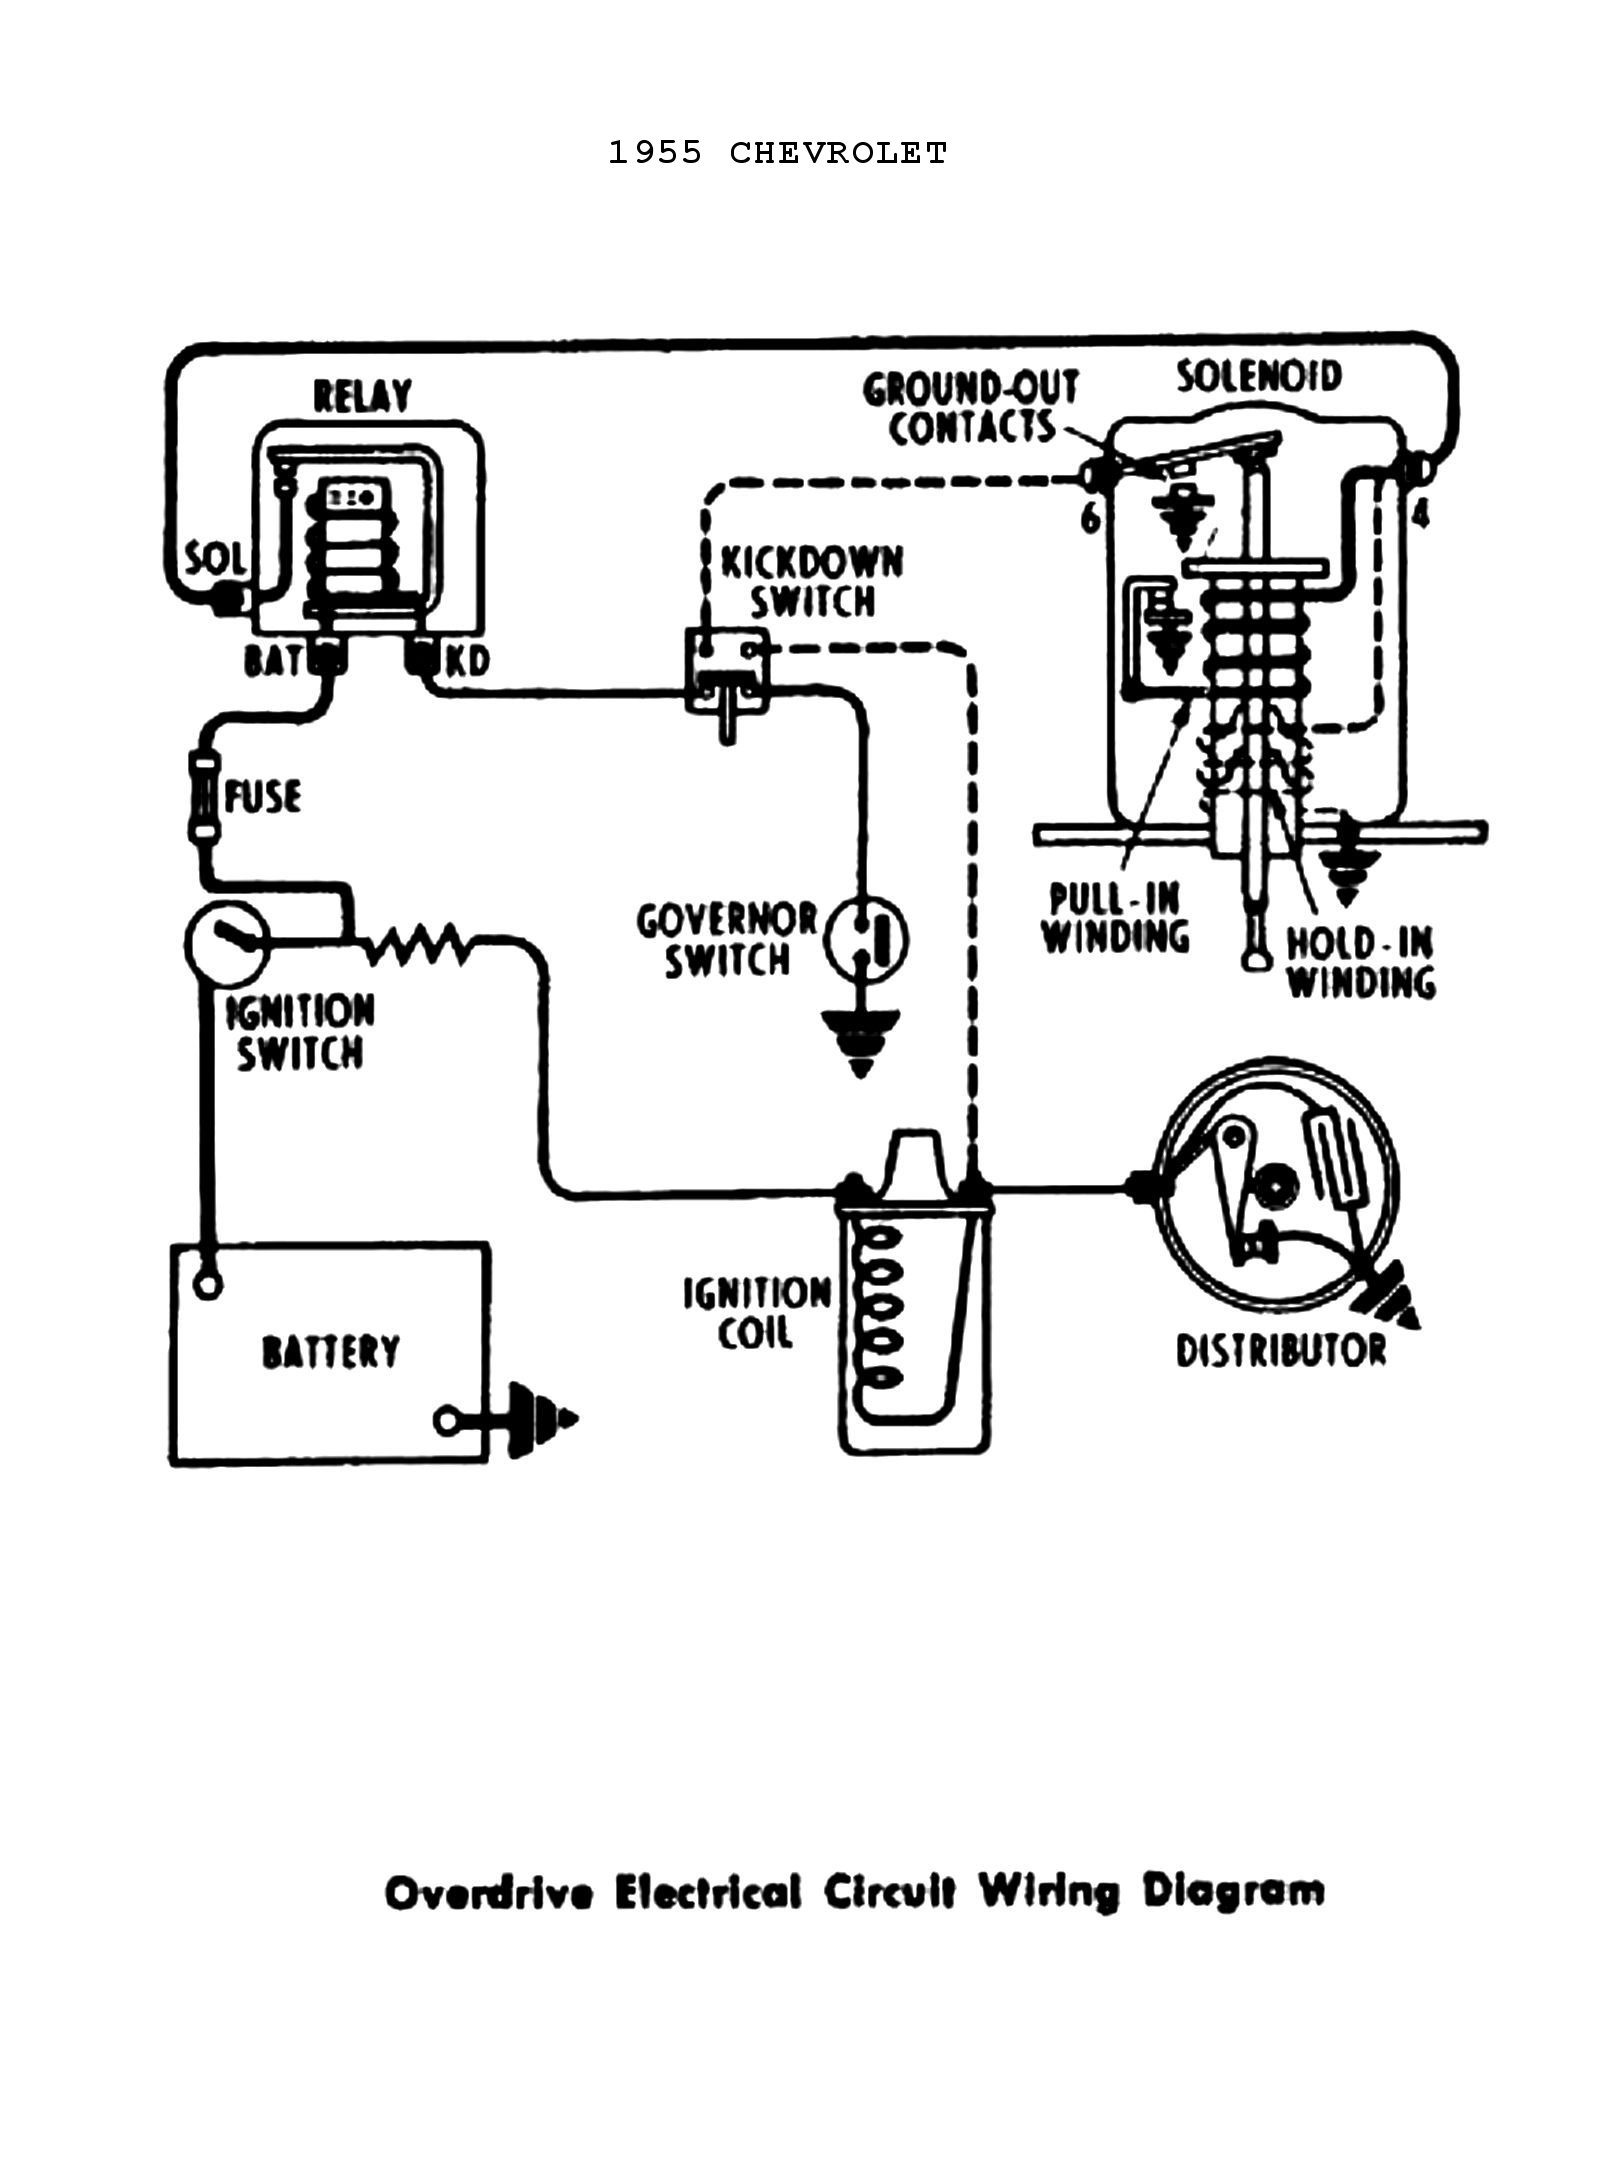 1992 Subaru Legacy Wiring Schematic Manual Of Diagram 92 3 Speed Overdrive Trifive Com 1955 Chevy 1956